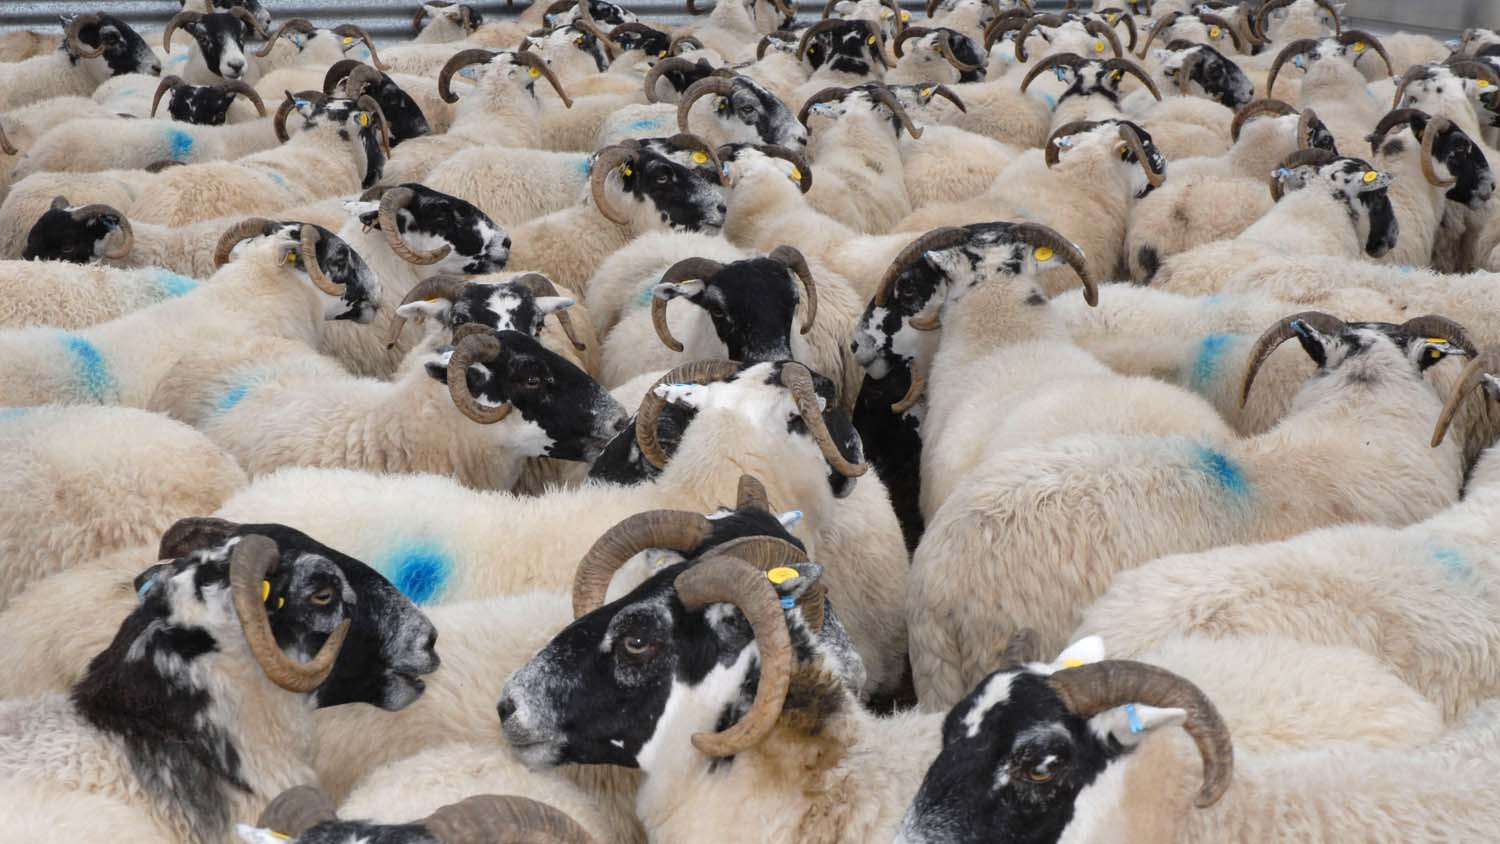 Police appeal: 134 sheep worth almost £10,000 stolen from farm